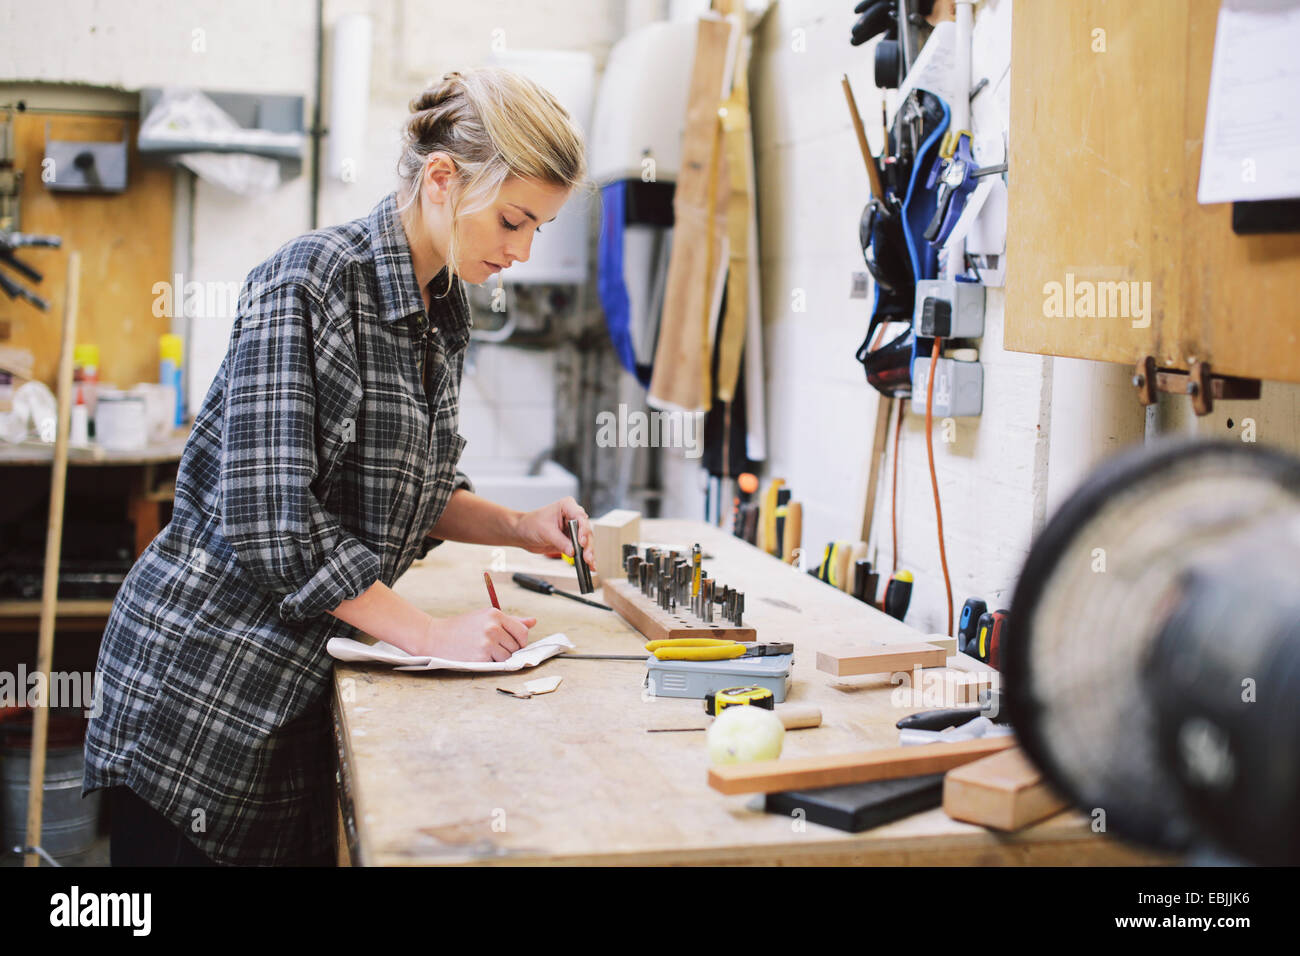 Young craftswoman making notes at workbench in pipe organ workshop - Stock Image